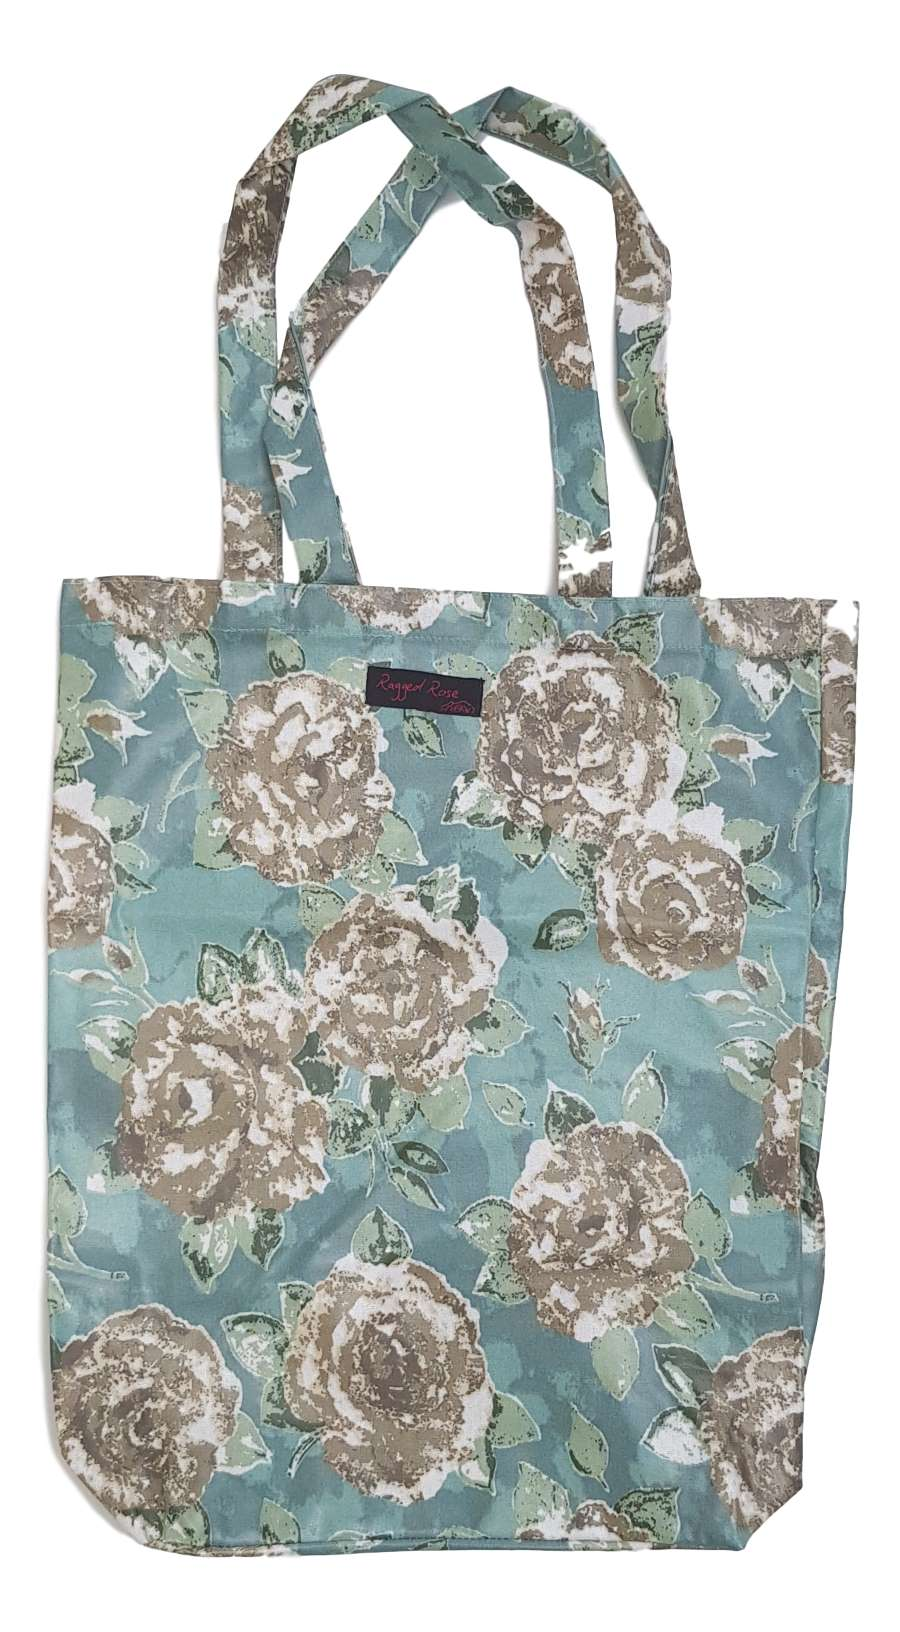 Duck Egg Blue Shopper Bag